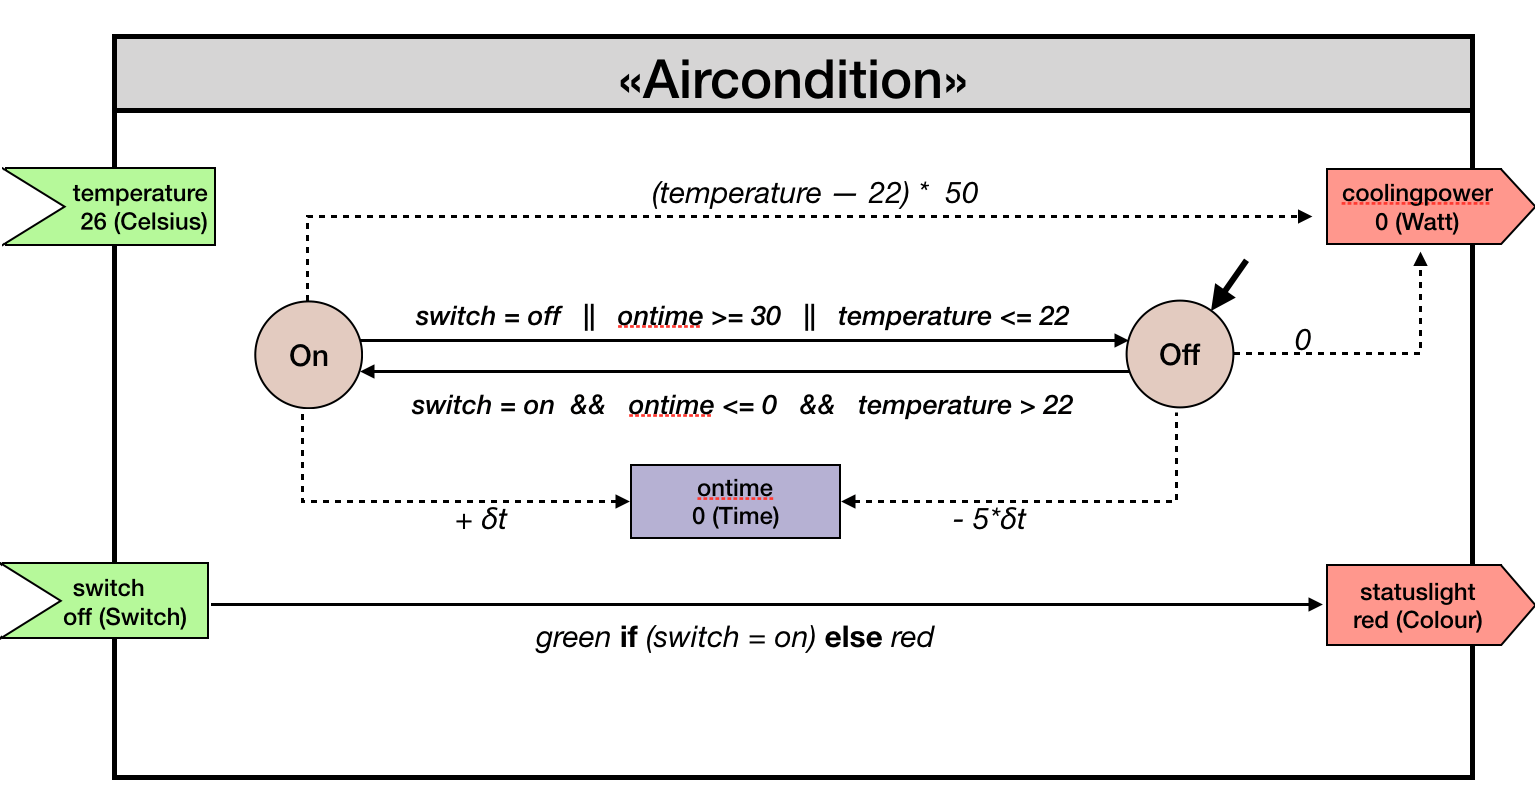 hight resolution of aircondition system modeled with the internal dsl crest